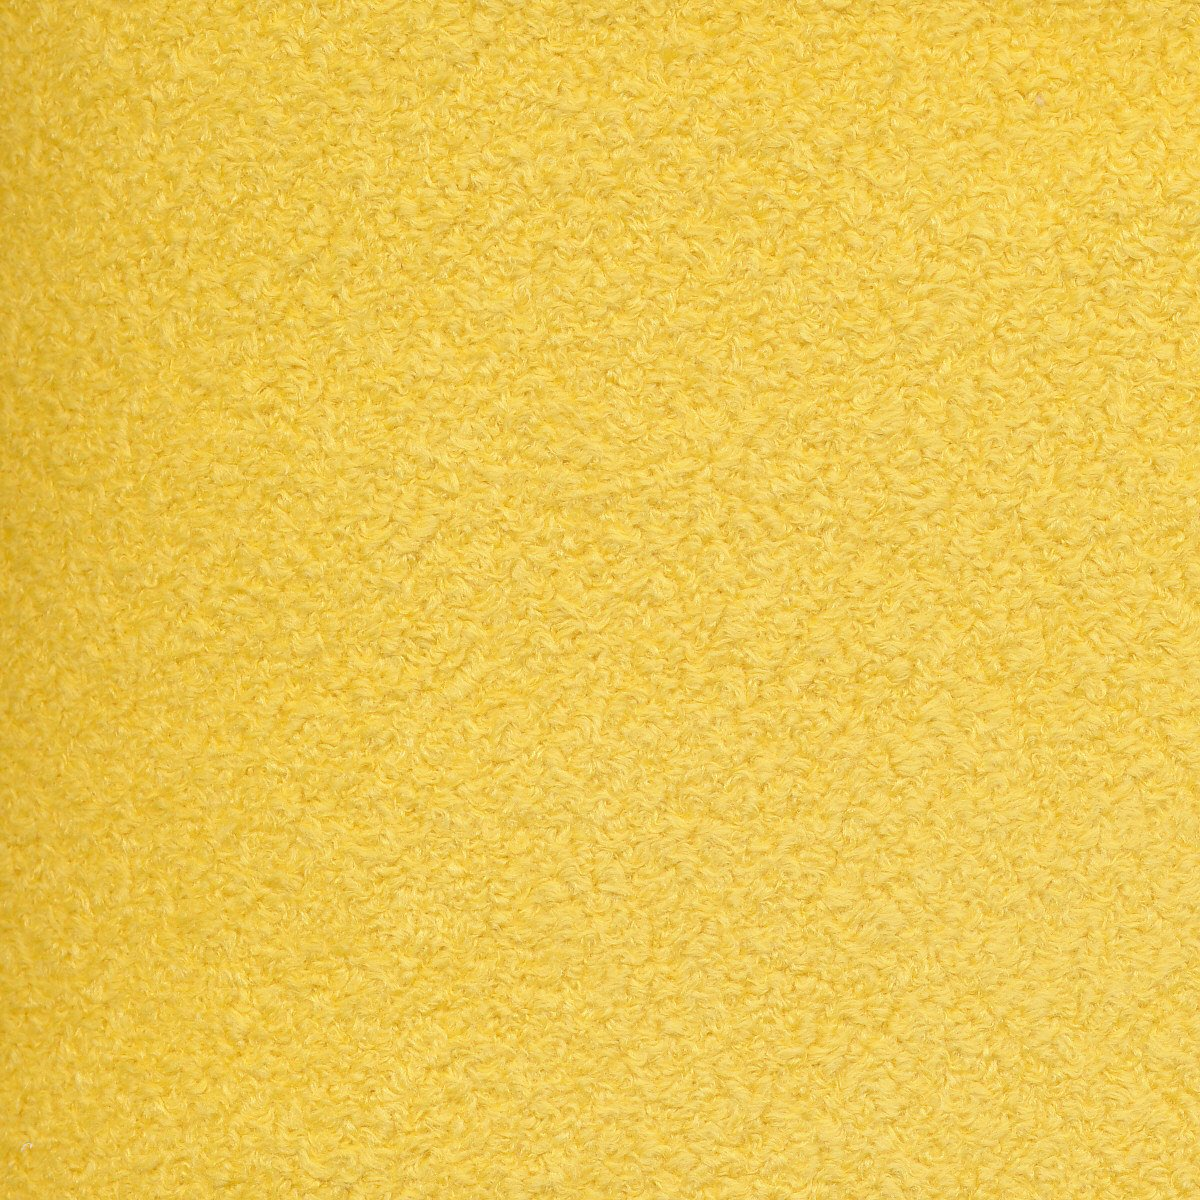 Moda Fireside 60 Polyester Wide Back - Canary Yellow (Min order of 1m)